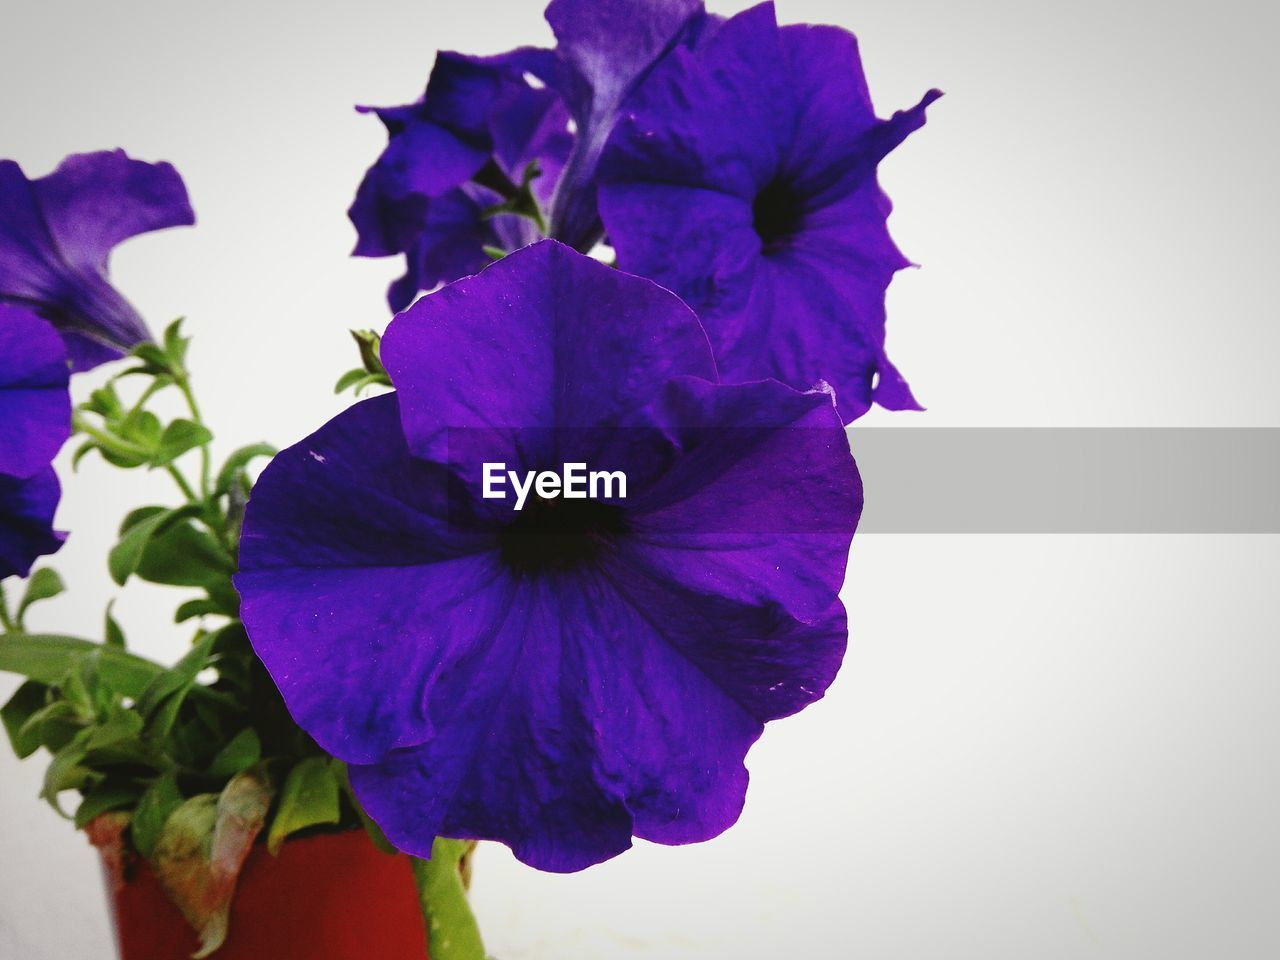 flower, petal, fragility, purple, beauty in nature, flower head, freshness, nature, growth, plant, no people, petunia, close-up, day, studio shot, outdoors, blooming, iris - plant